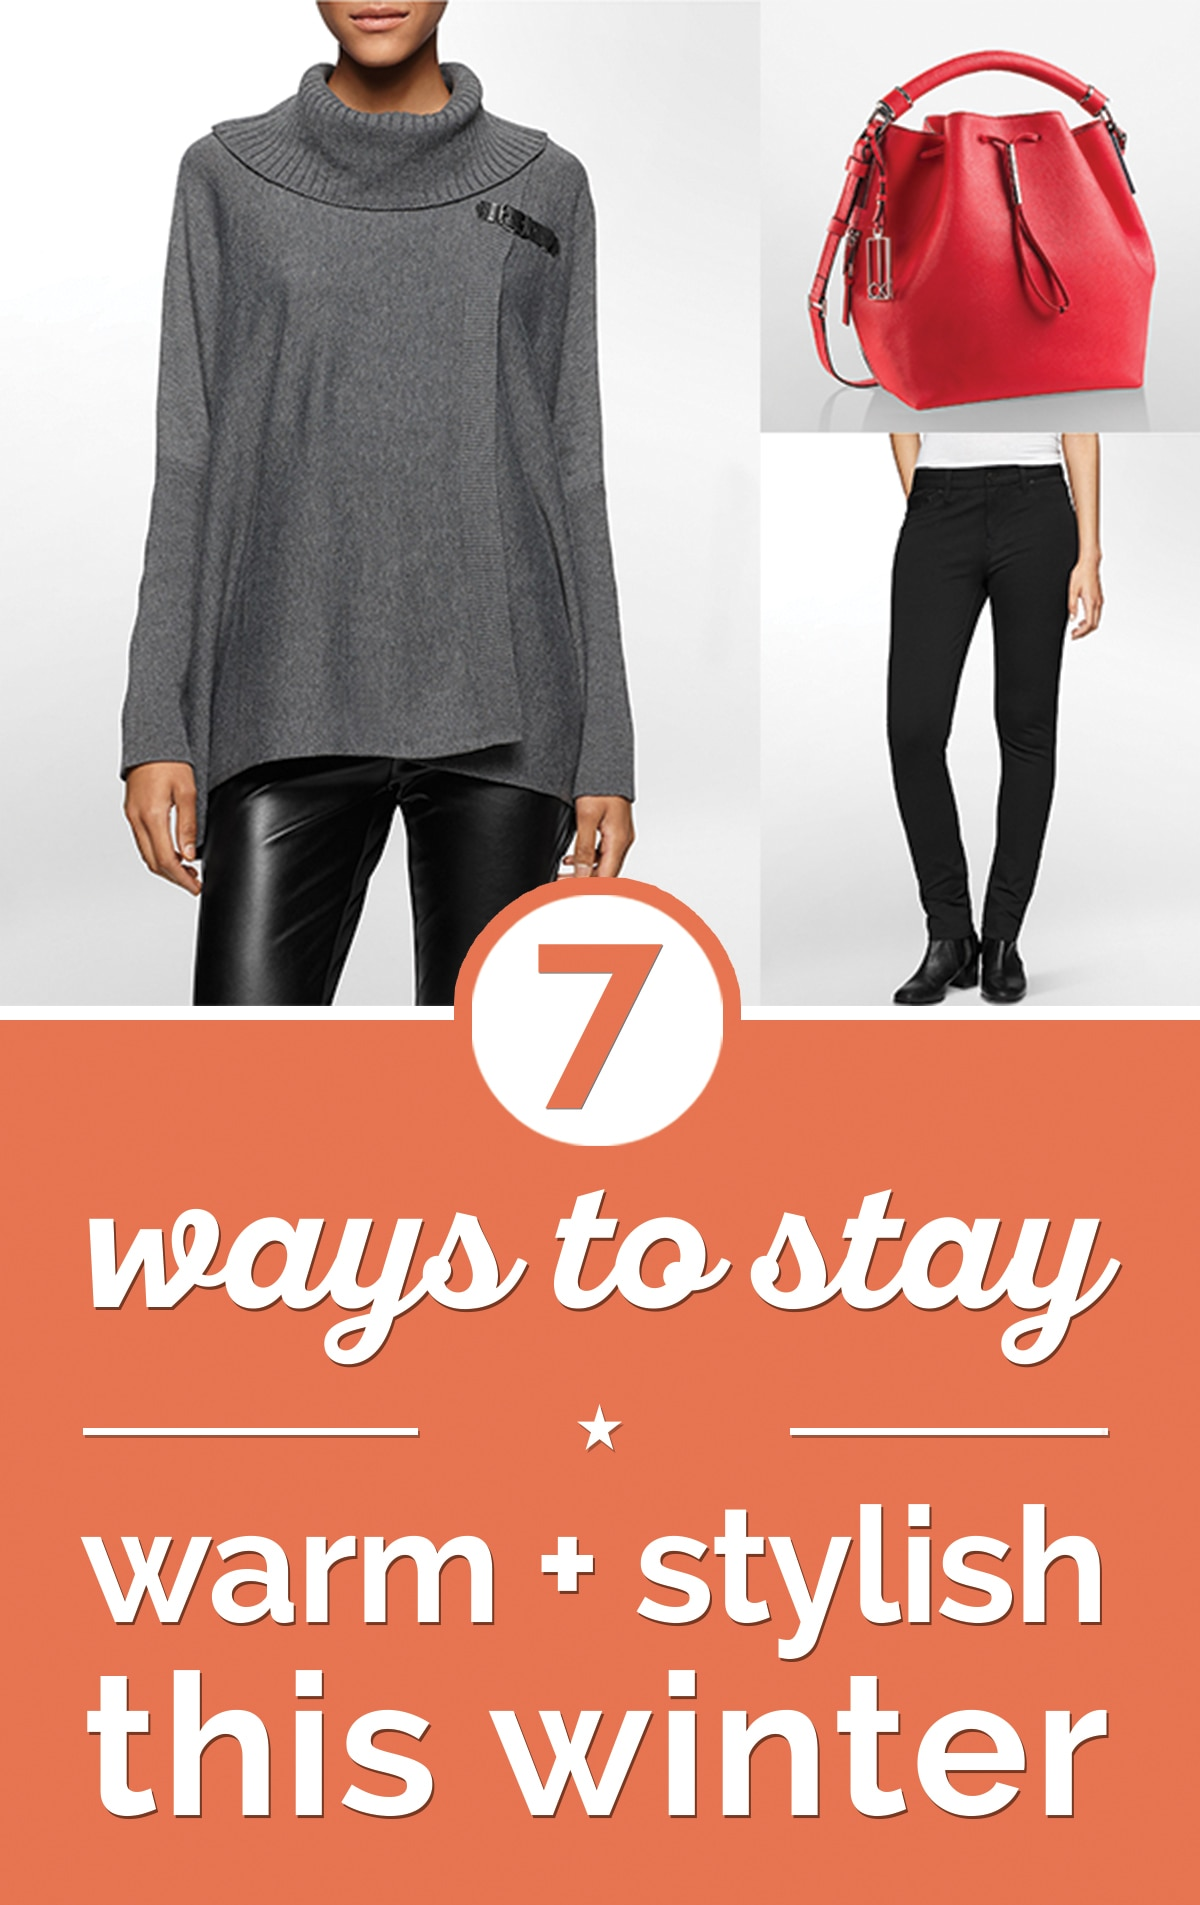 7 Stylish Ways To Stay Warm This Winter